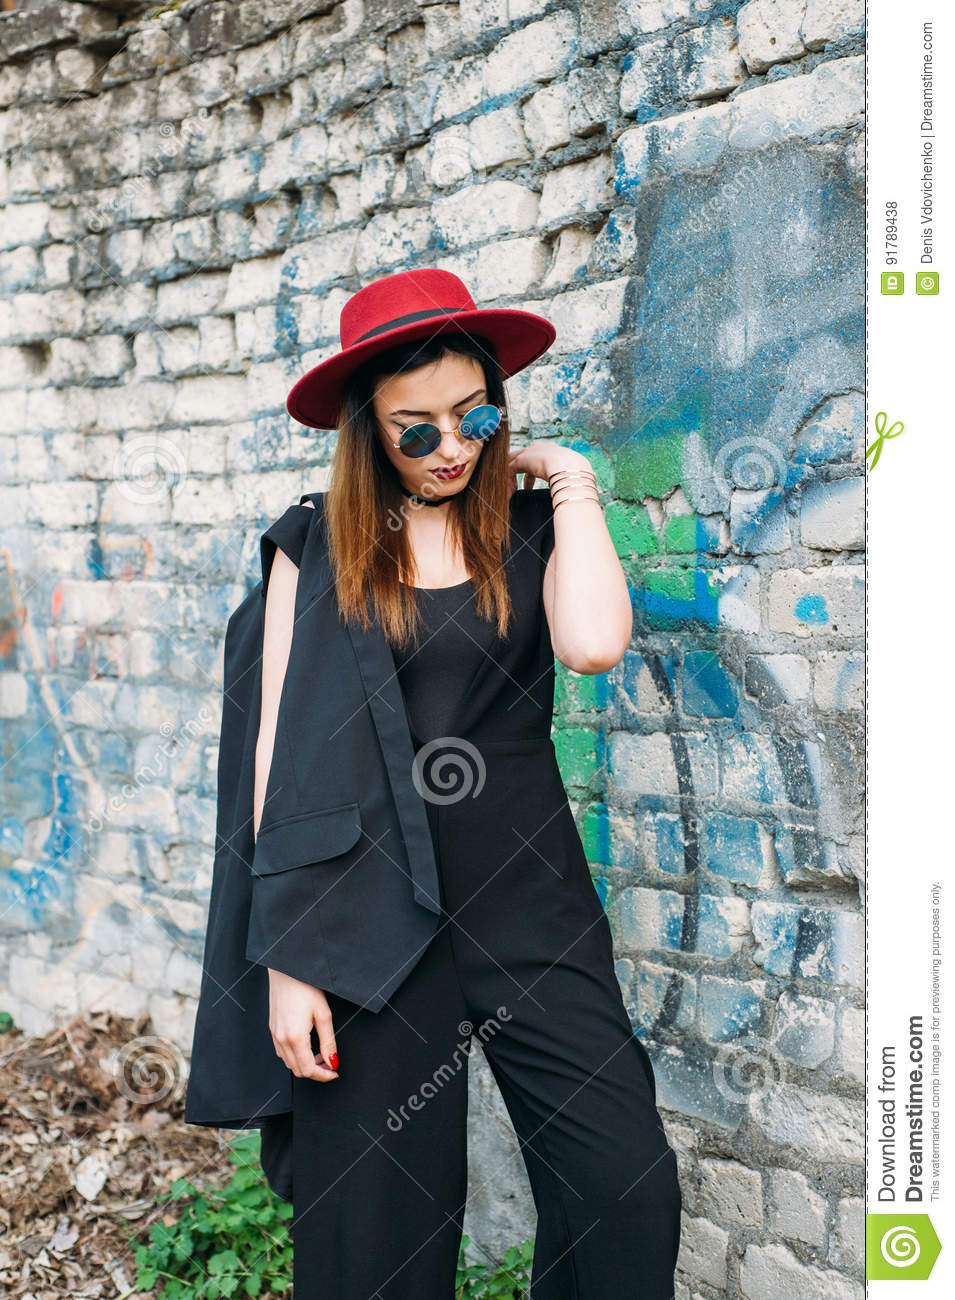 044127e8 Fashion pretty woman model wearing a red hat, green round sunglasses, black  jacket. Posing over brick background with graffiti